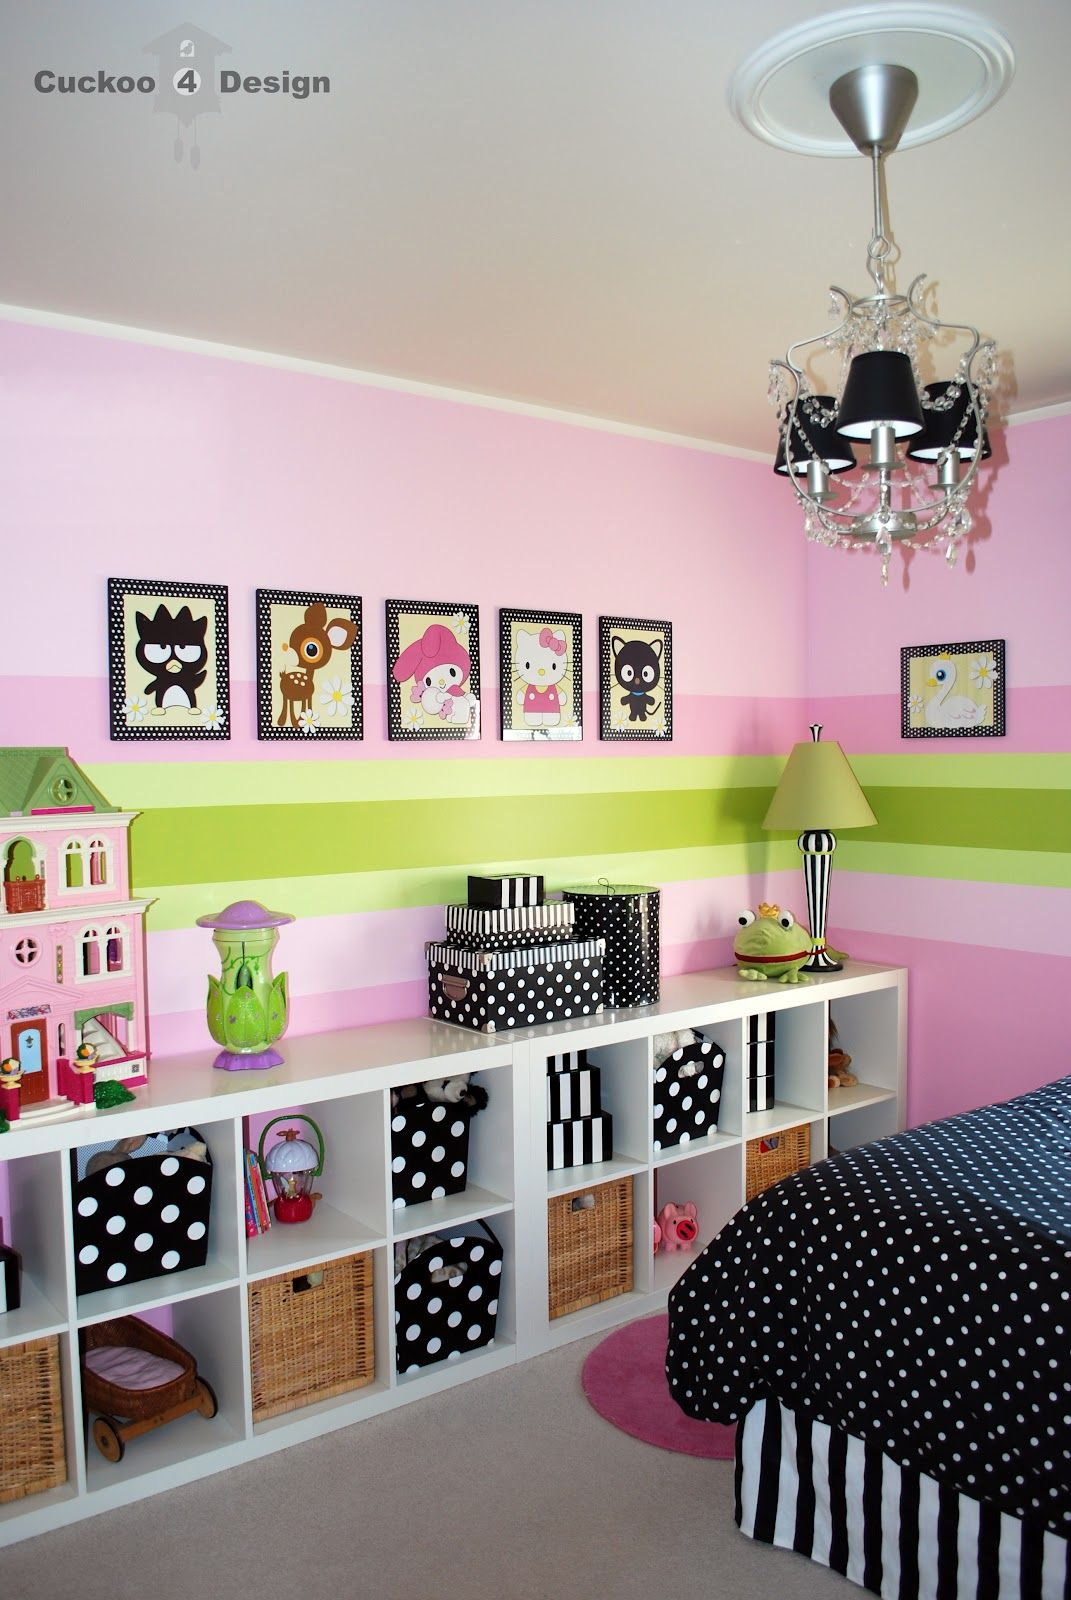 Best Design Idea 40 Excellent Age 8 Bedroom Ideas Lyric Need For Other Areas Of Your Home Our